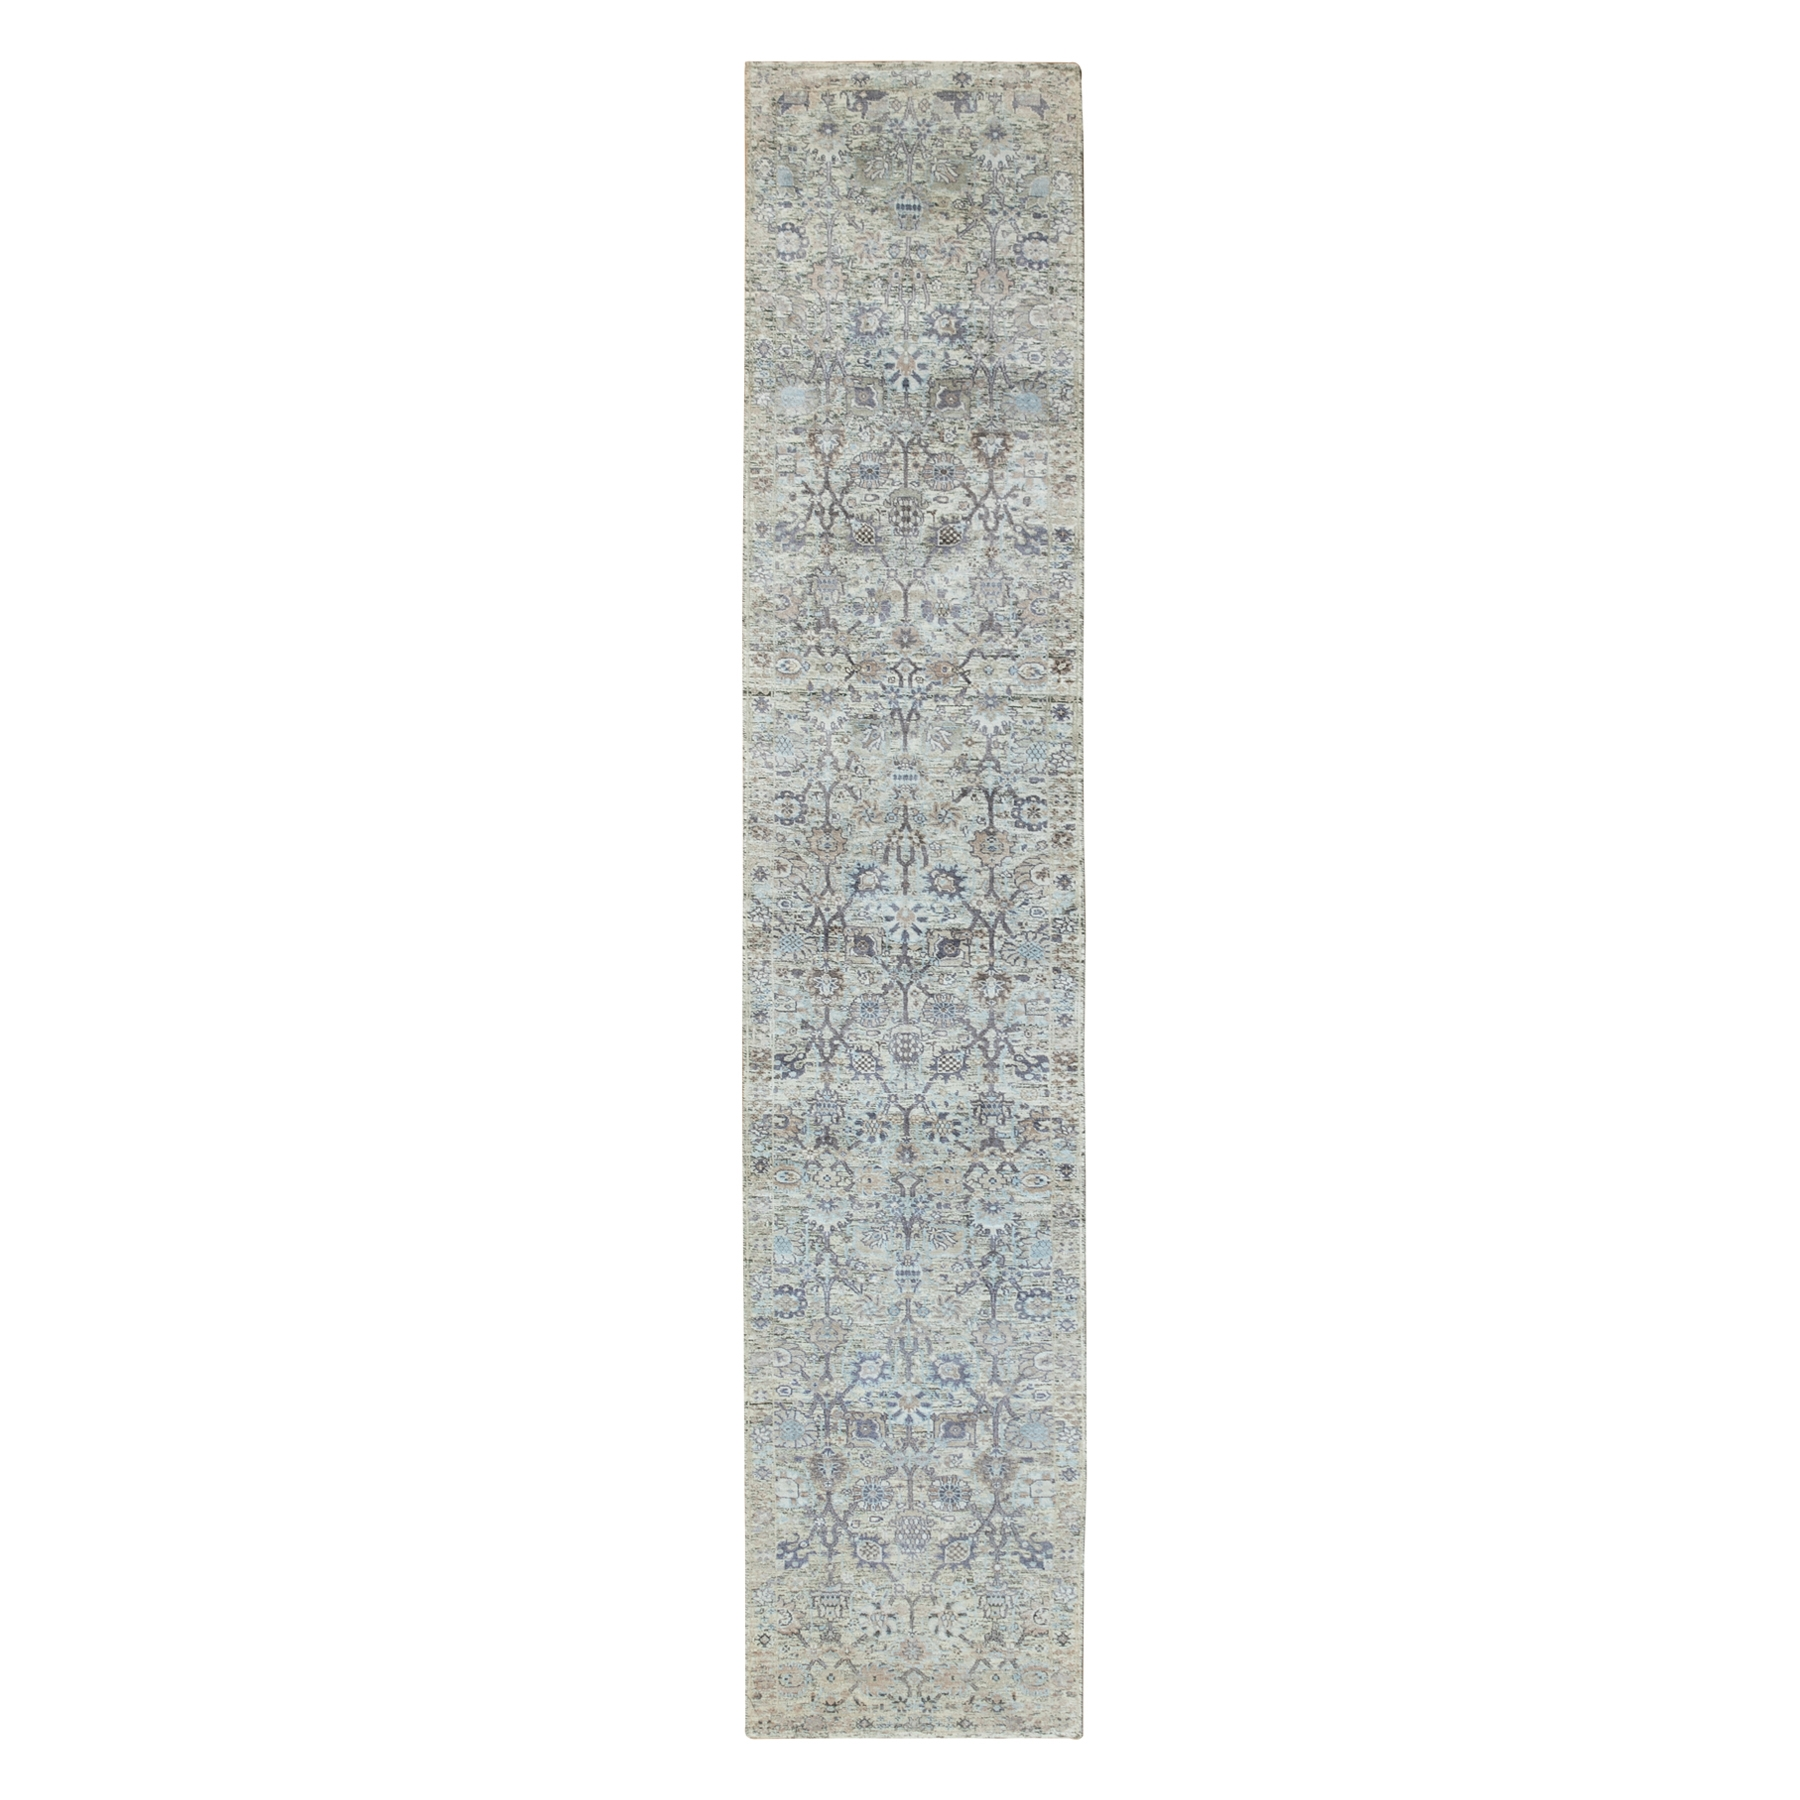 Transitional Rugs LUV530505